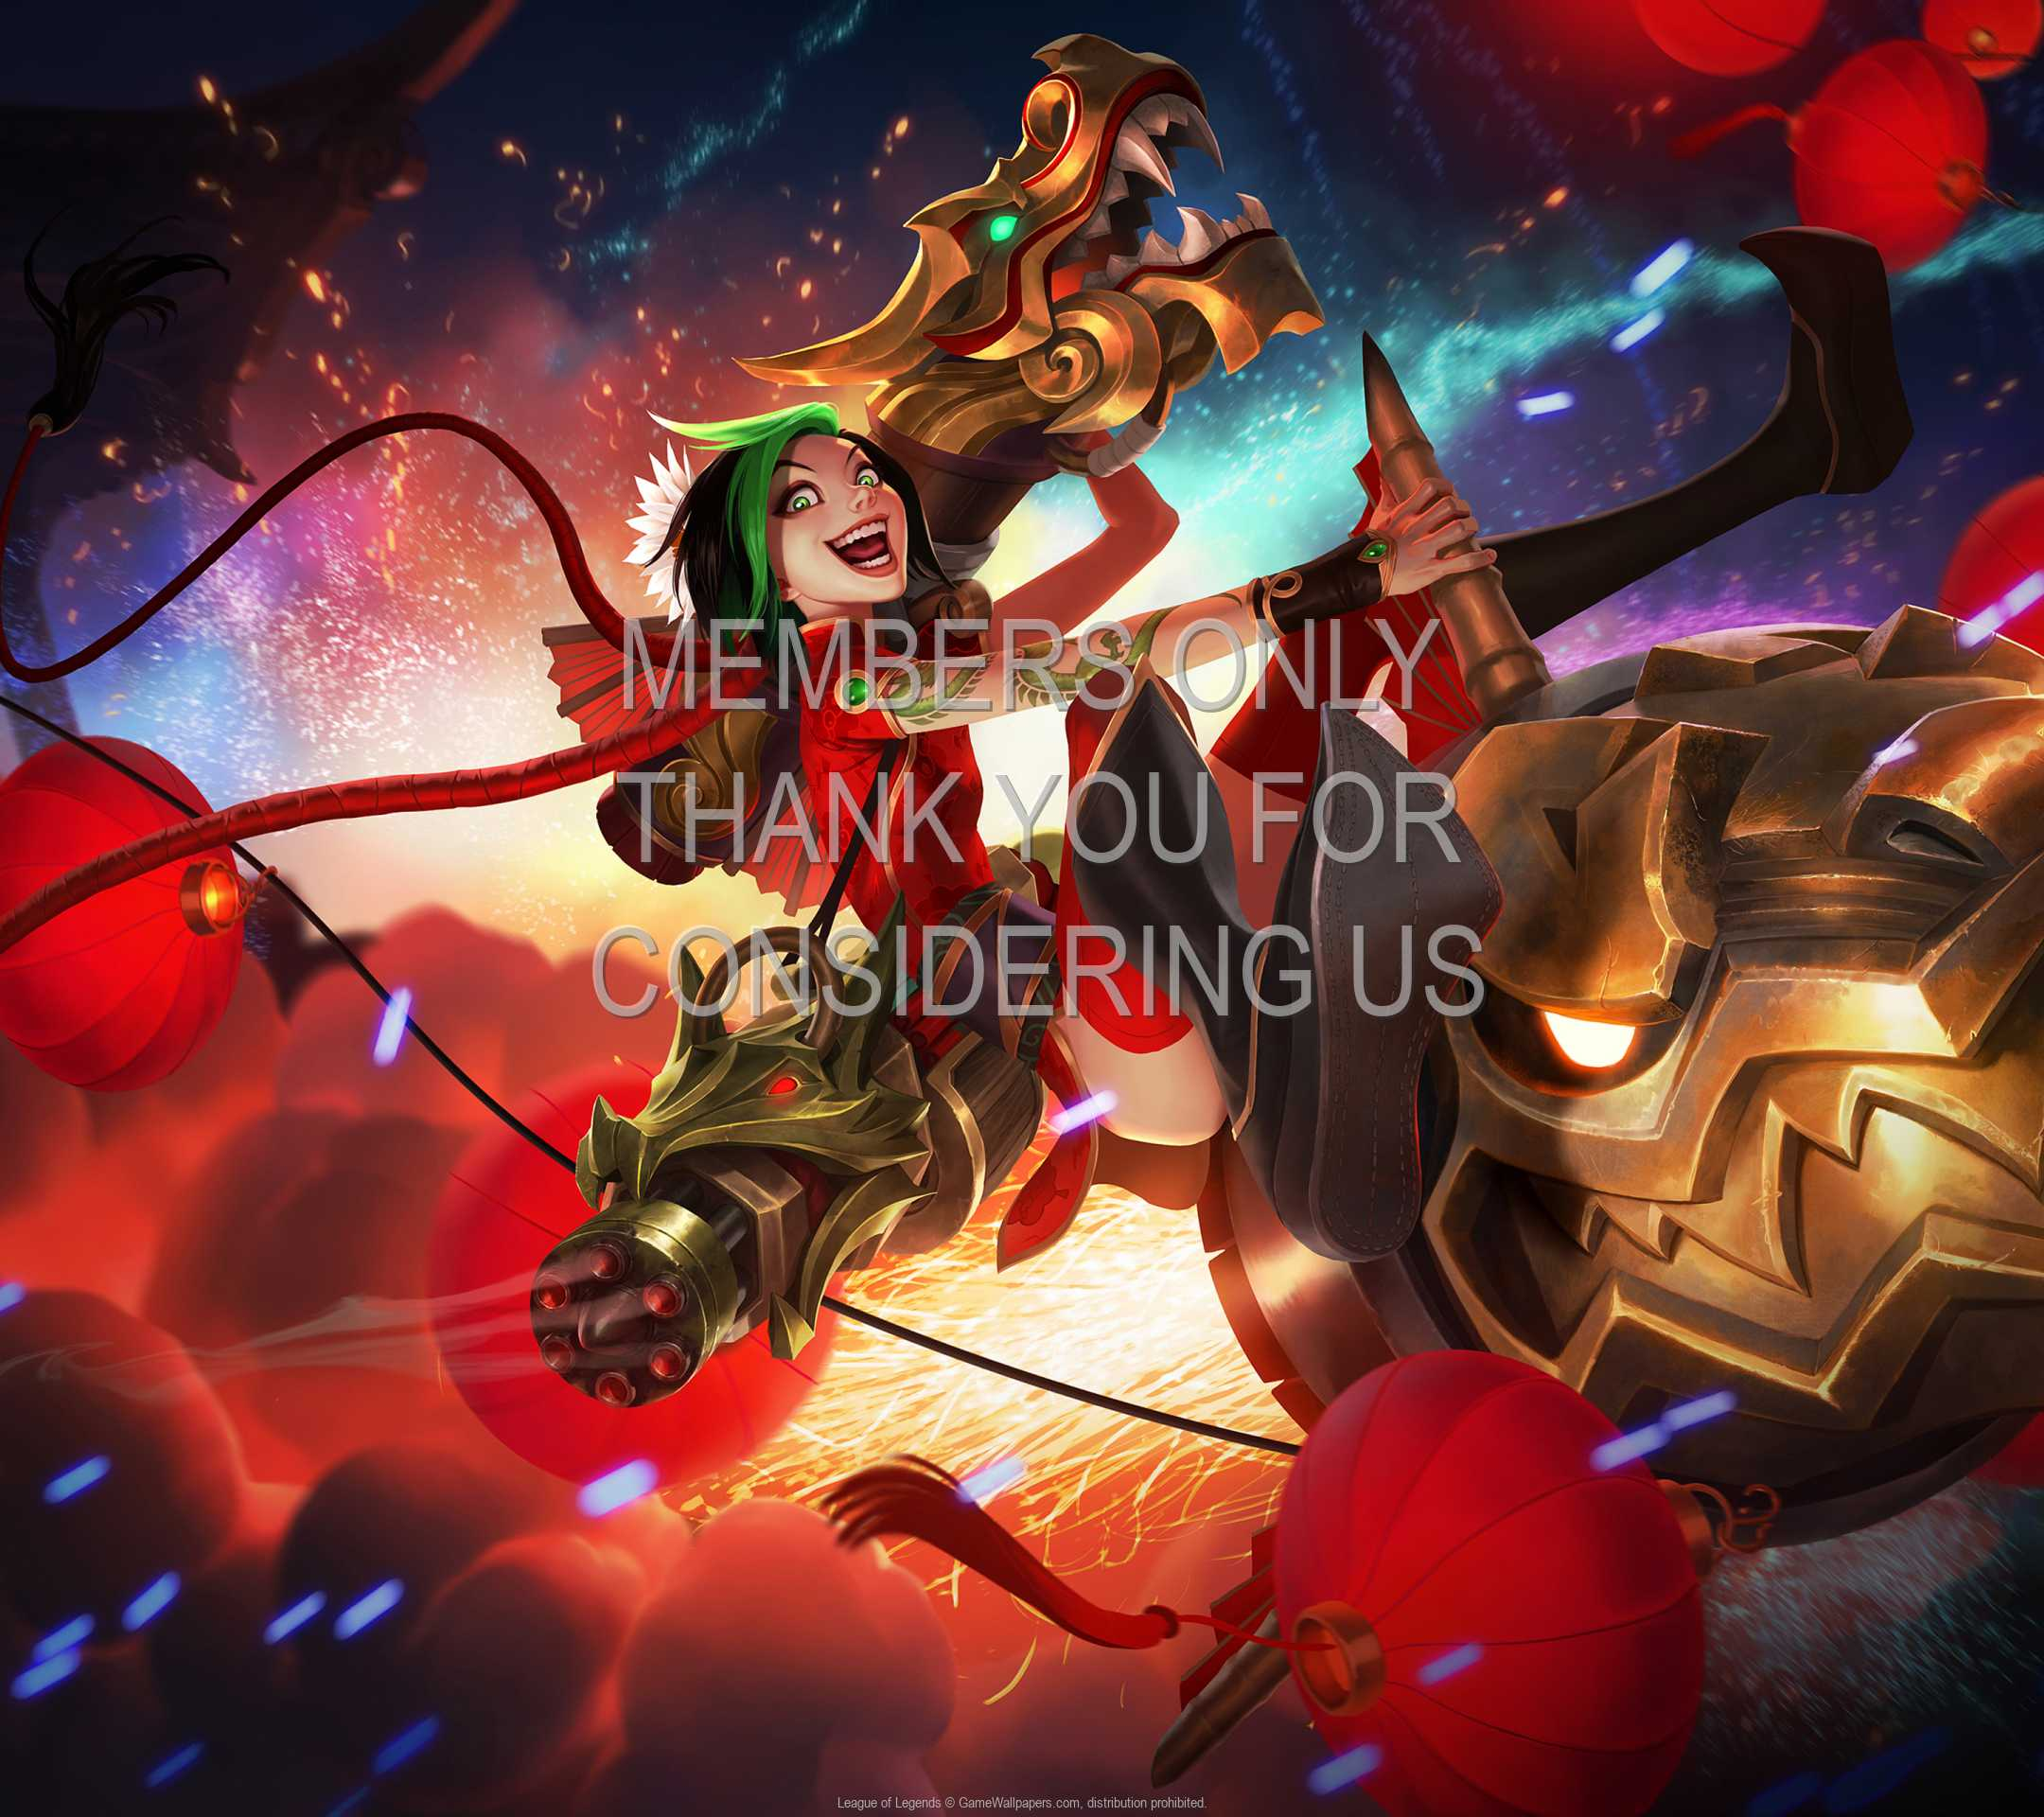 League of Legends 1080p Horizontal Móvil fondo de escritorio 39